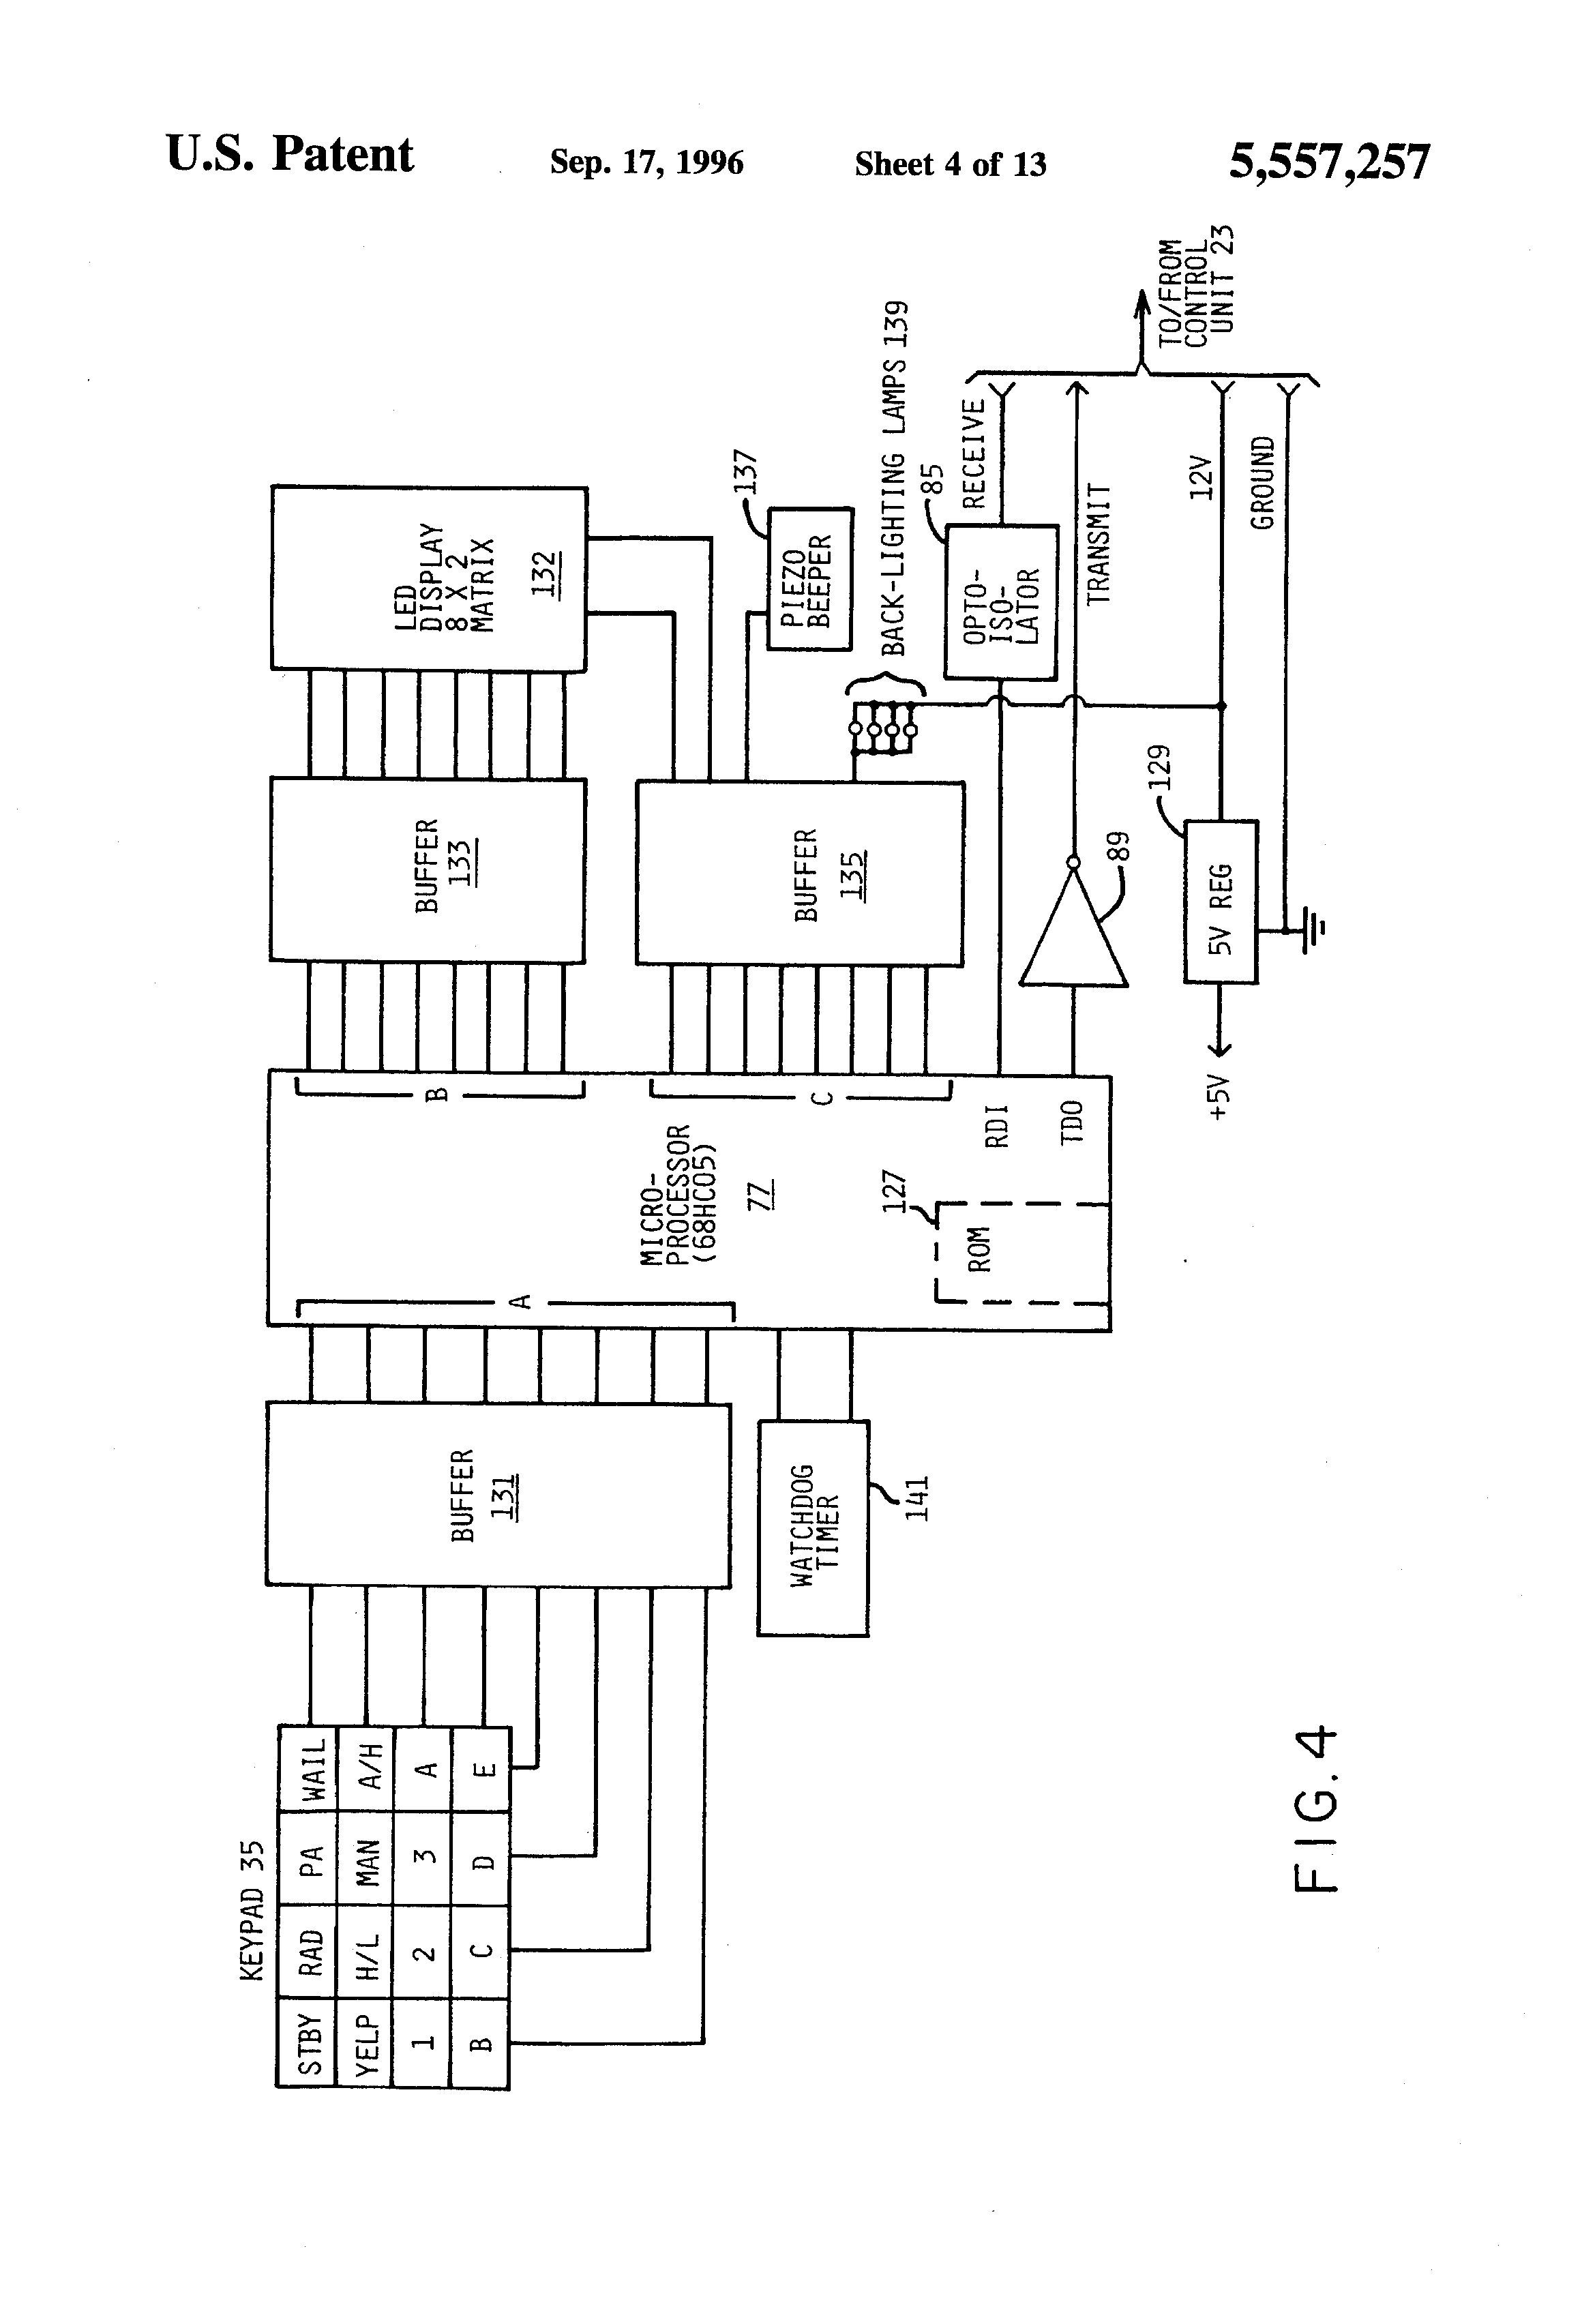 Signal Stat 900 Wiring Diagram To Lube New Federal Corporation Pa300 - Signal Stat 900 Wiring Diagram